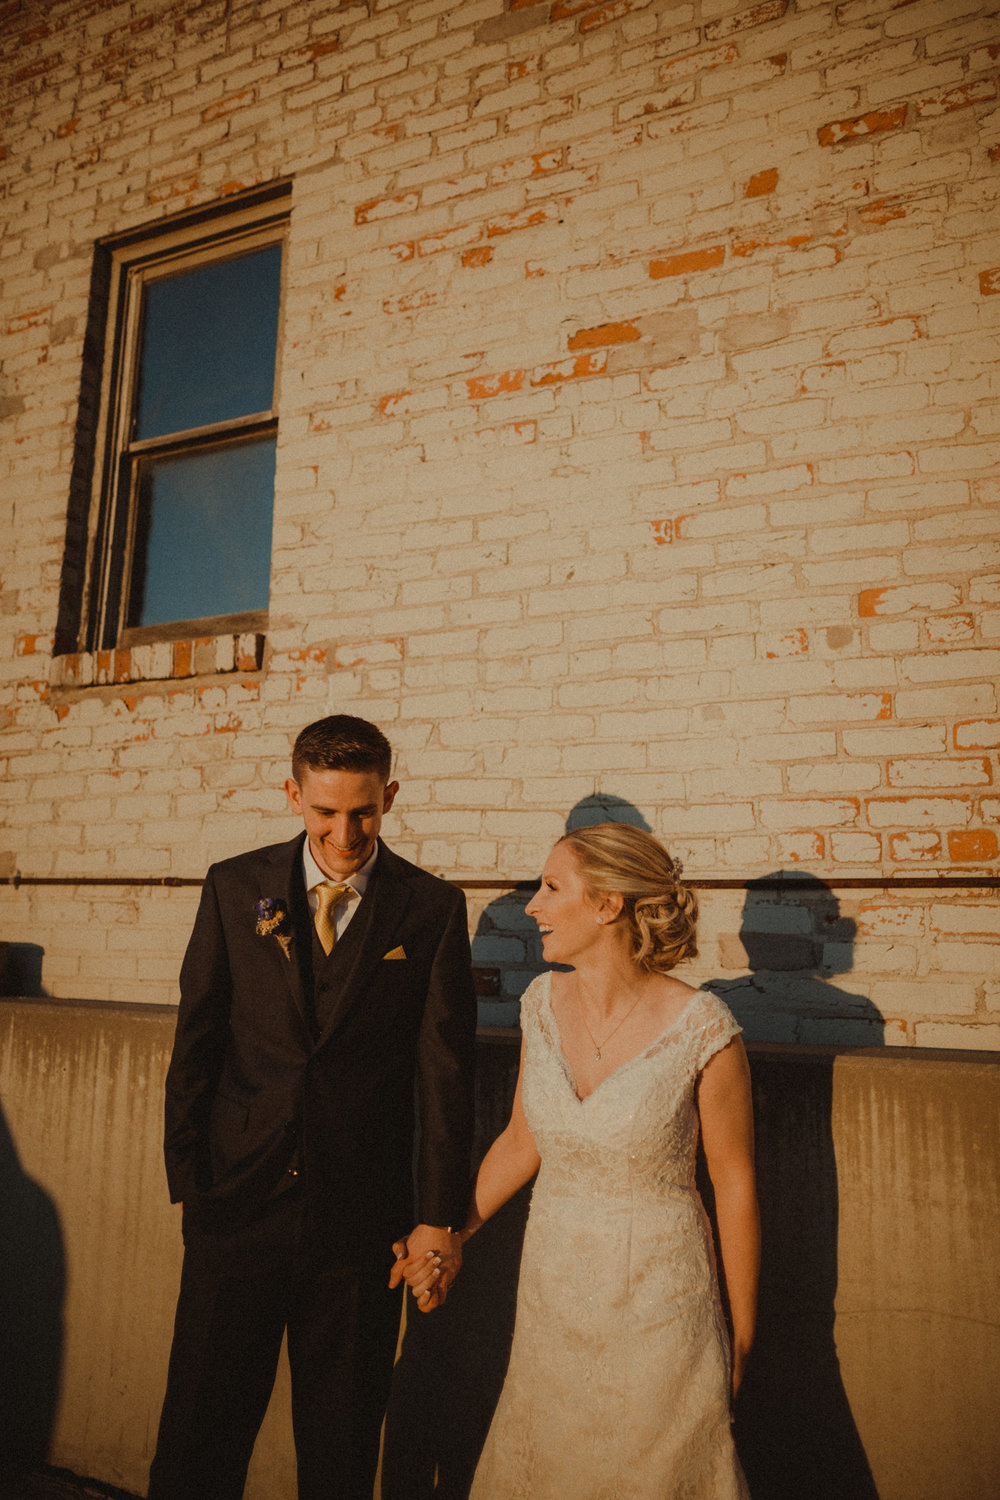 lawrence kansas wedding photographer-43.jpg